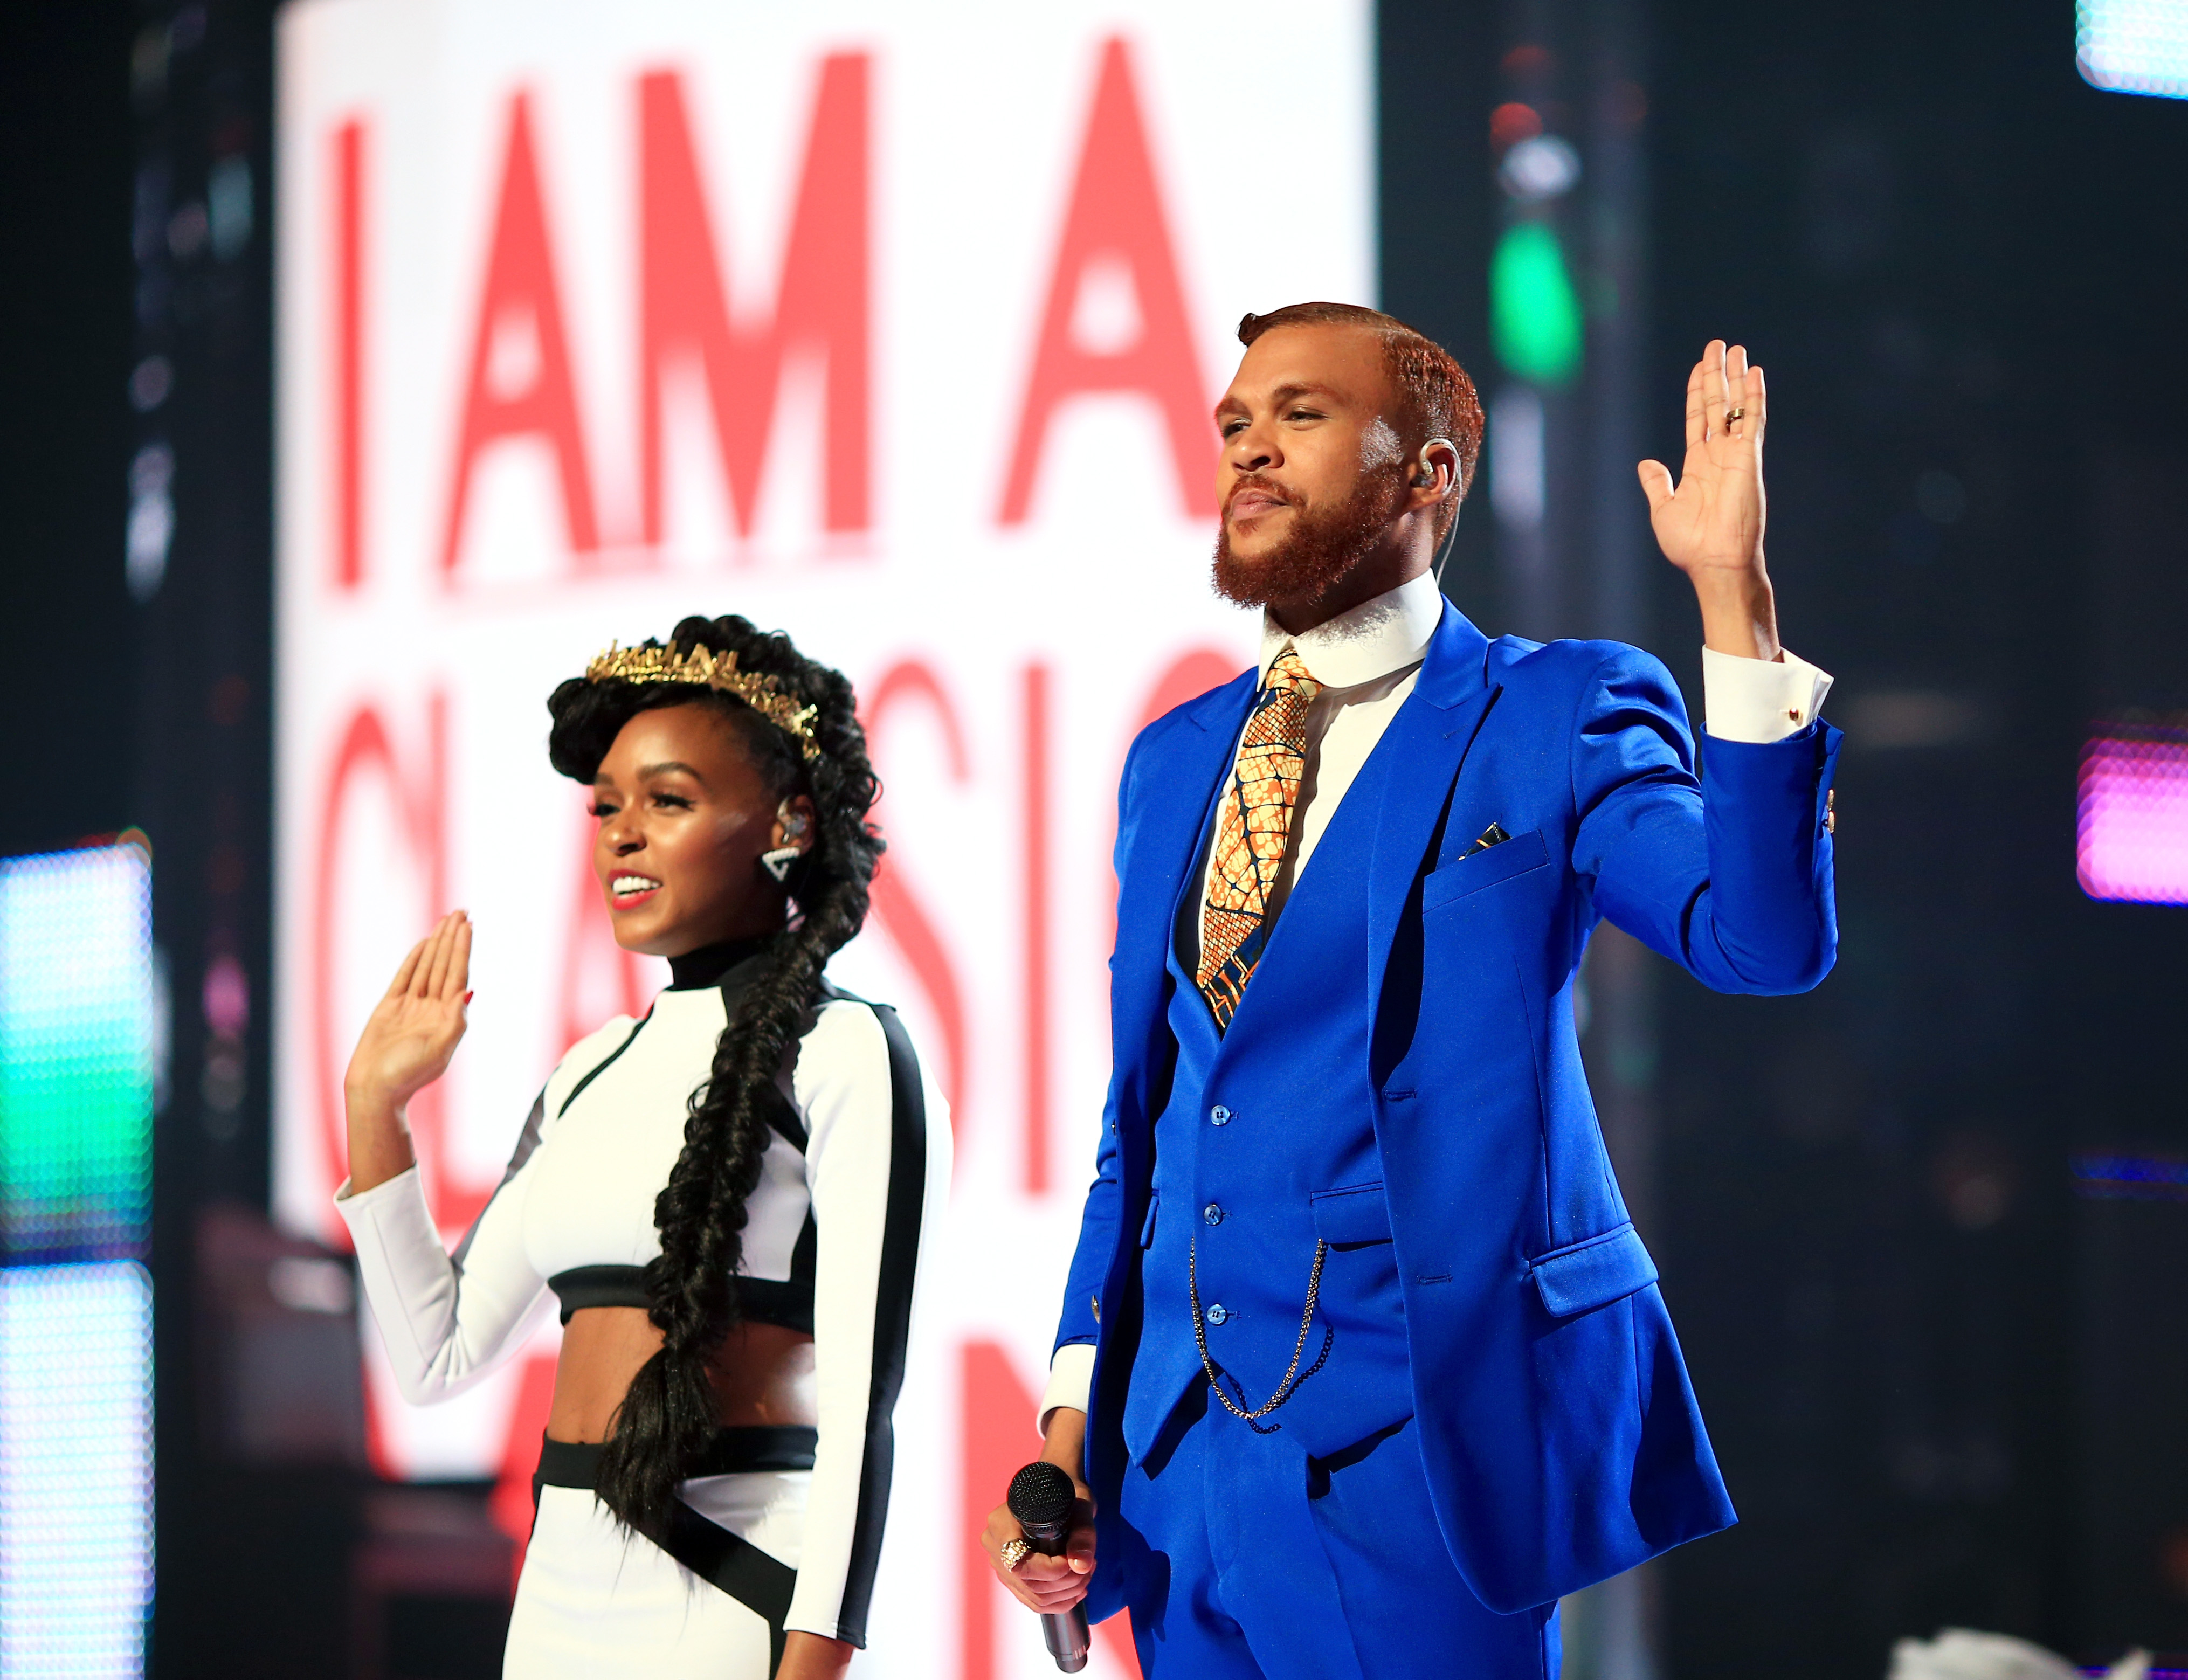 janelle monae and jidenna dating Janelle monáe, soundtrack: dance apocalyptic - as janelle monae robinson) late show with david letterman (tv series) (performer - 2 episodes.